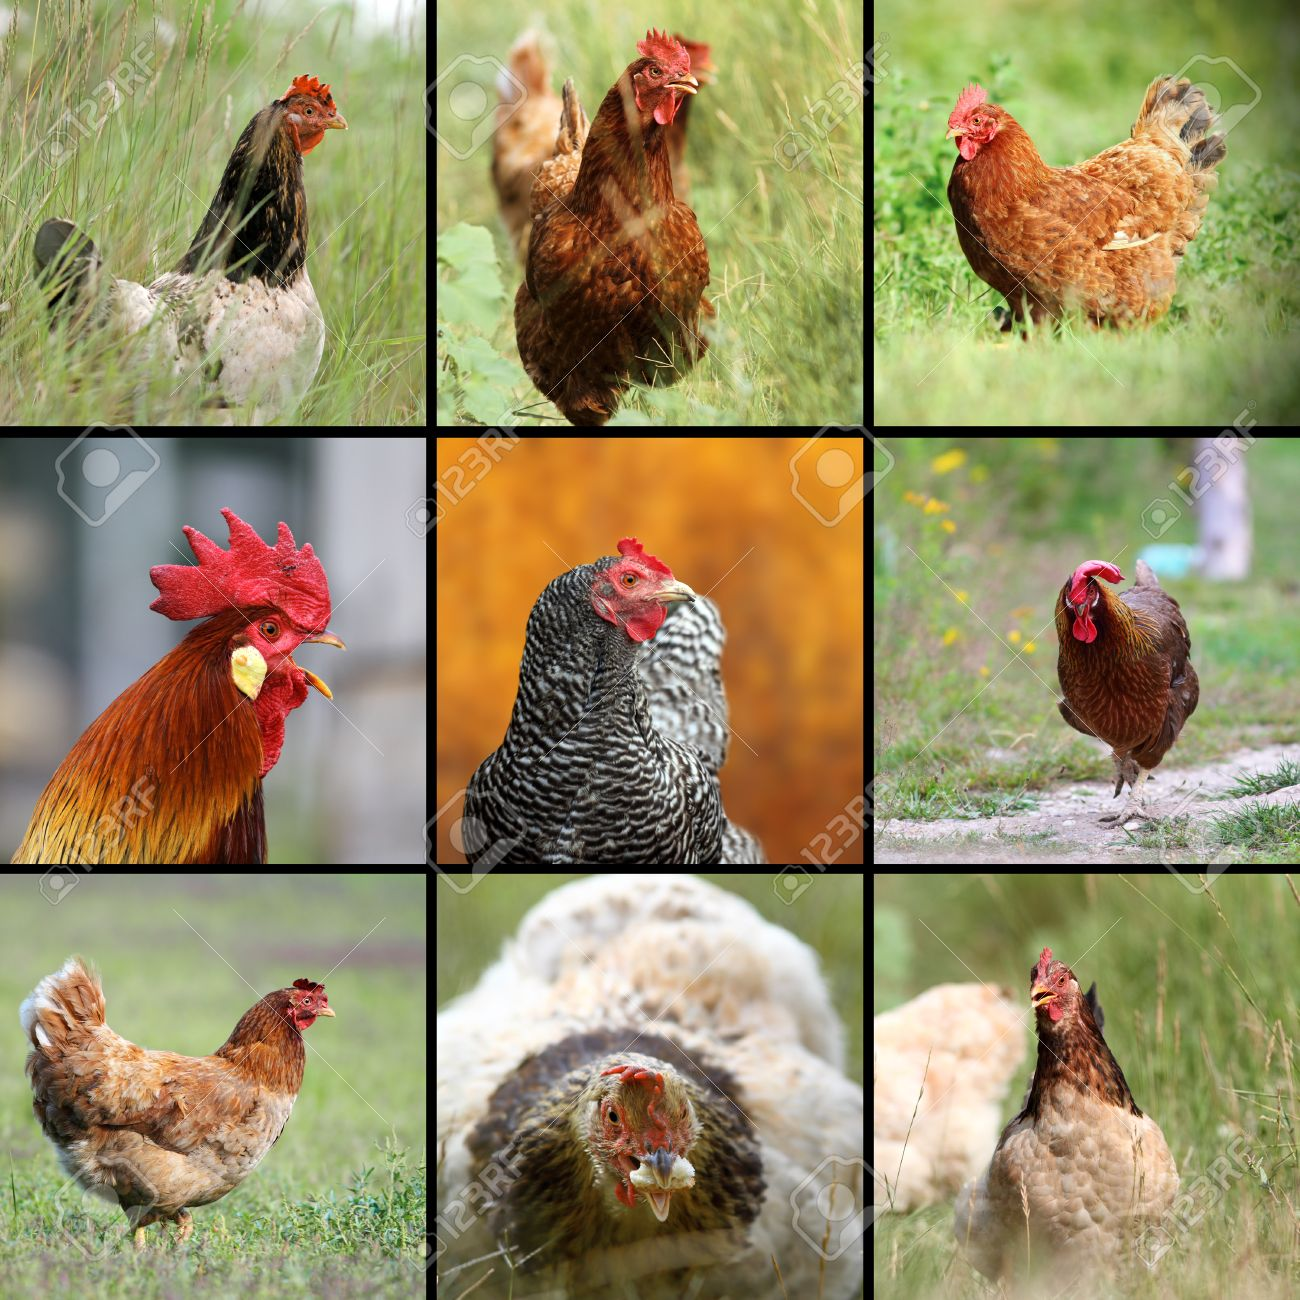 images of farm birds hens and roosters on lawn stock photo